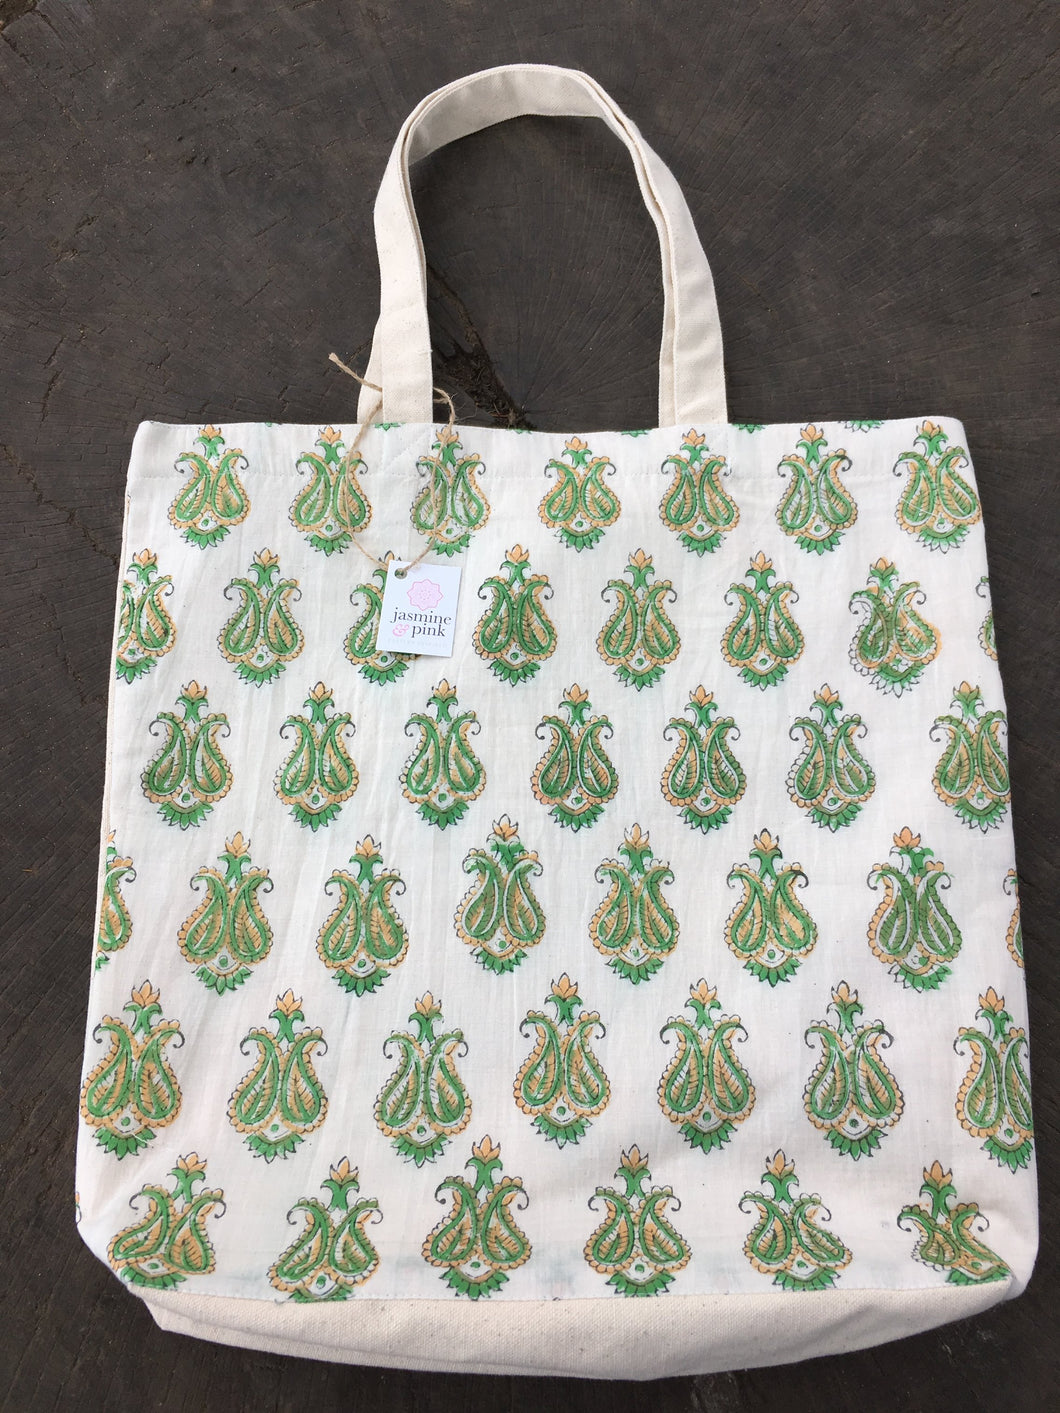 Green large canvas tote bag